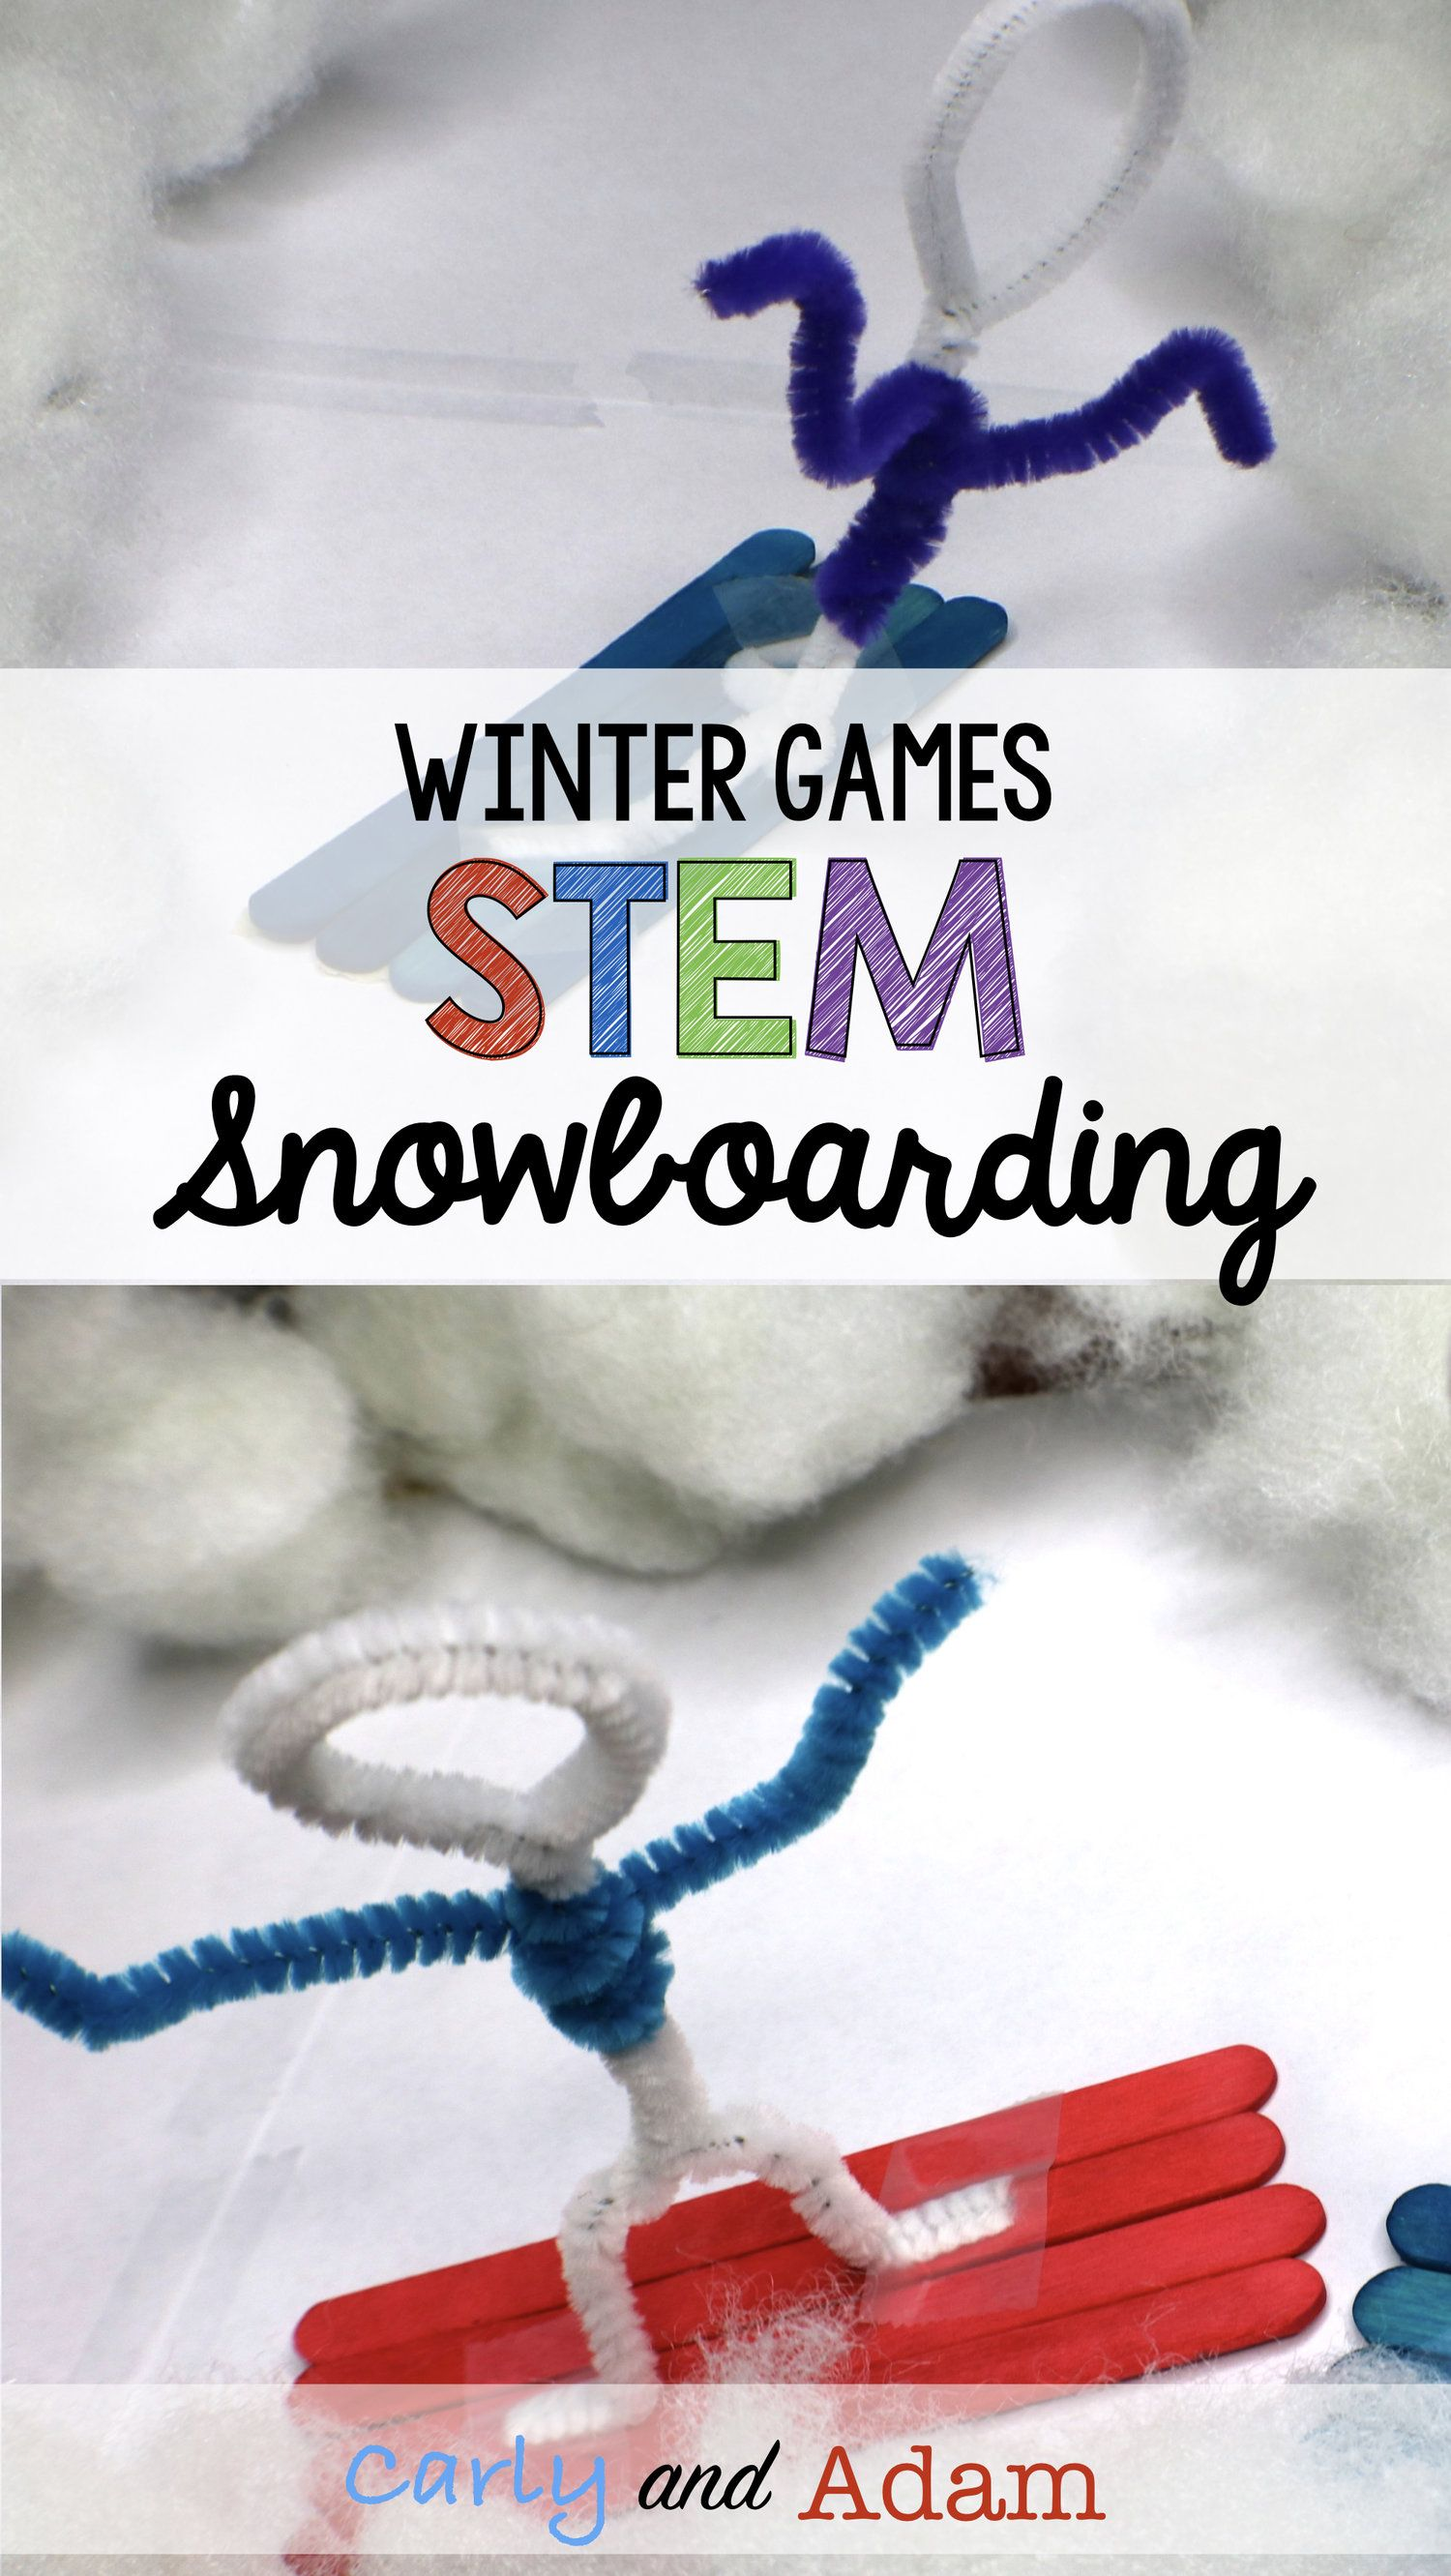 How To Organize A Winter Games Stem Competition In Your